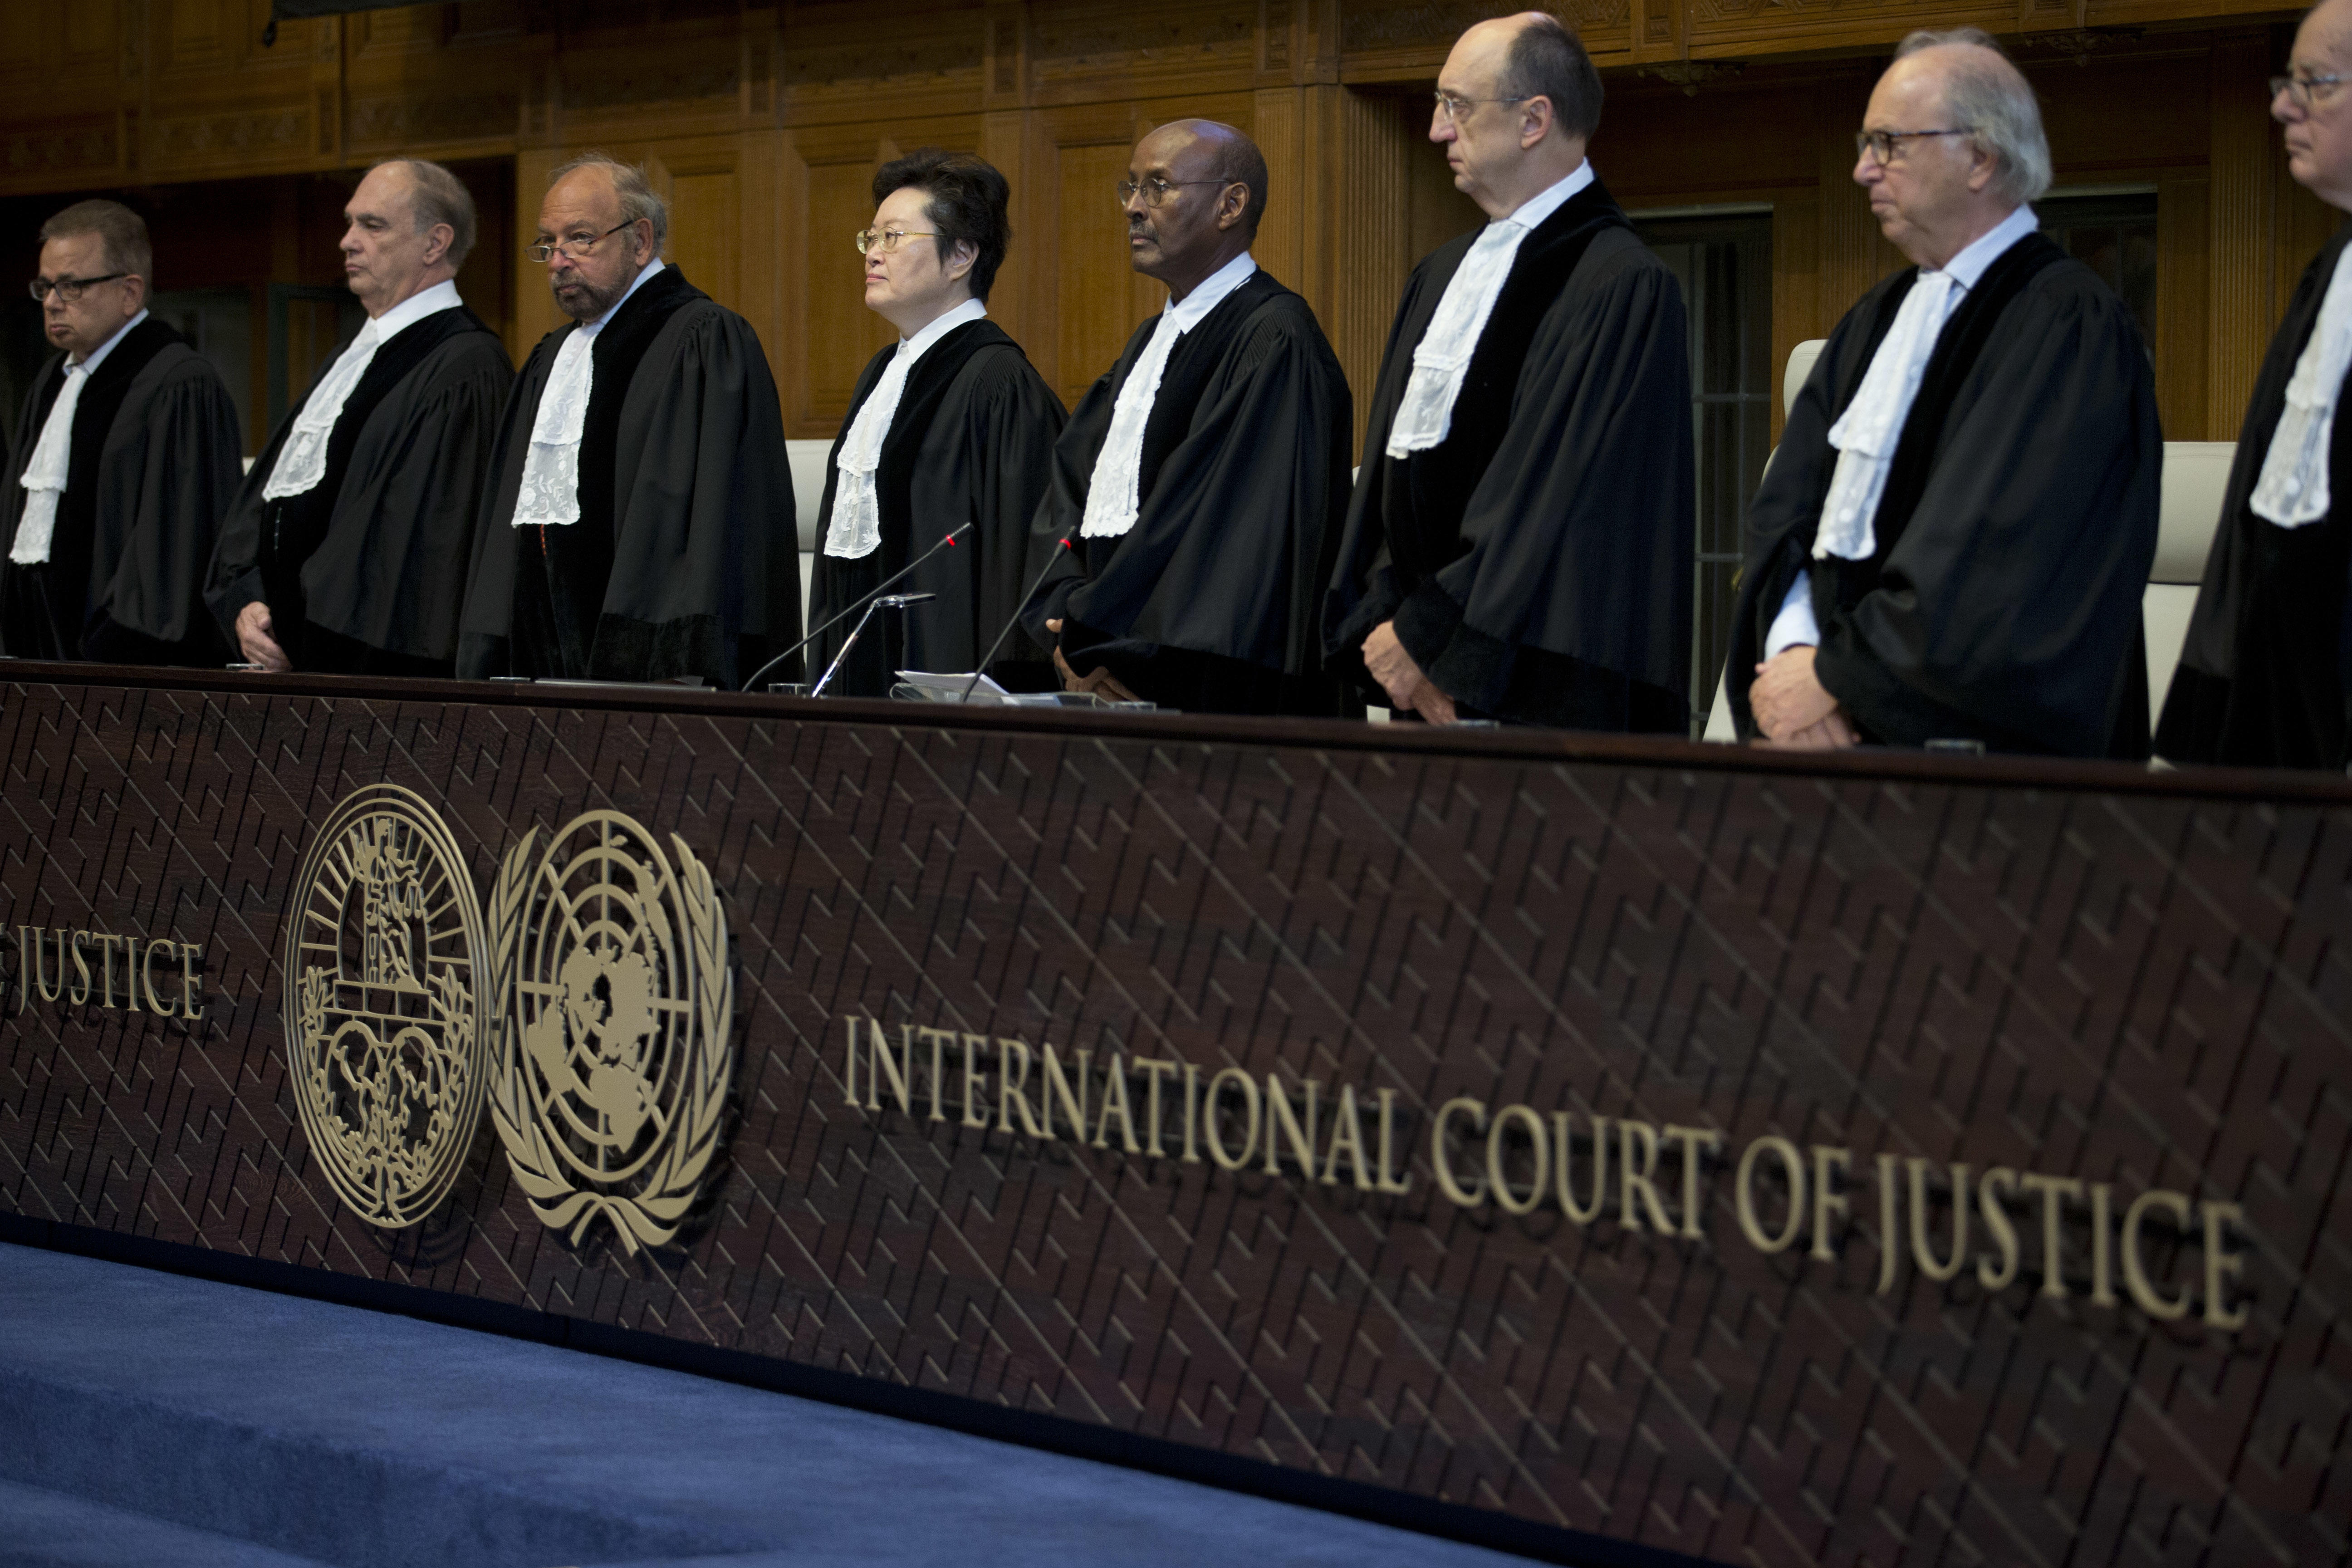 UN International Court of Justice says US sanctions on Iran